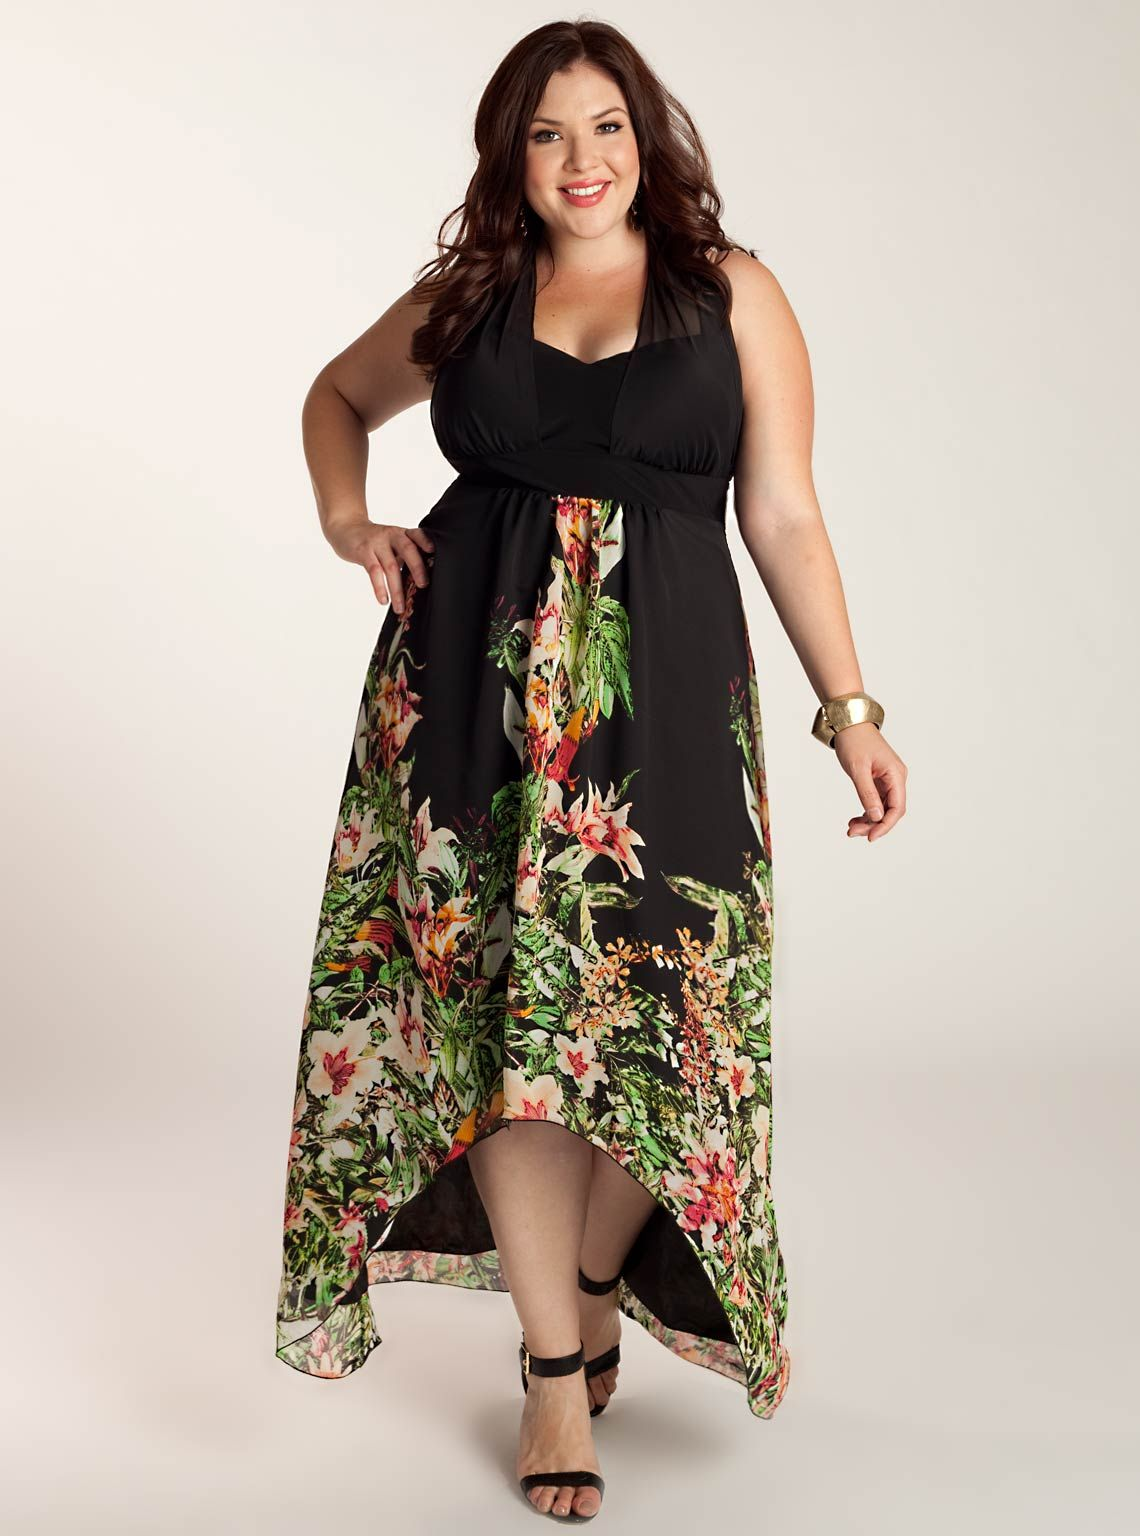 25 plus size womens clothing for summer | high fashion dresses